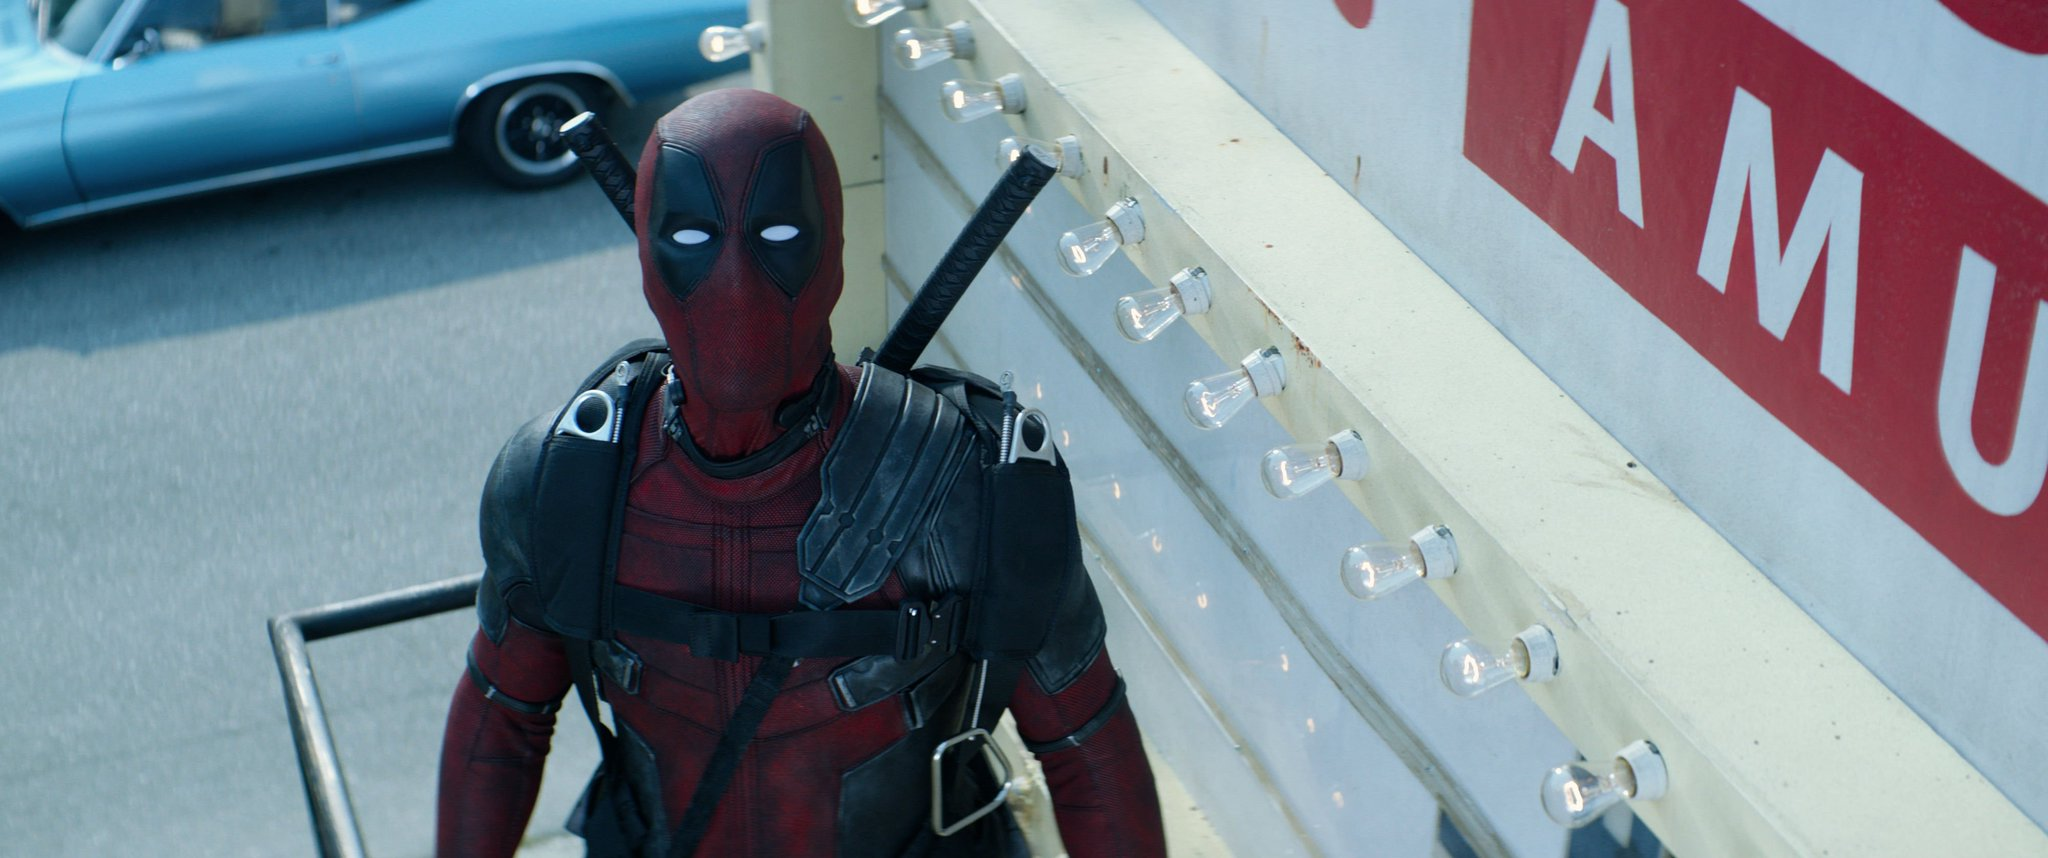 Deadpool 2 is wilder, crazier, and funnier than the original film https://t.co/JwVDBrfHzB https://t.co/ycfNDDMr8u